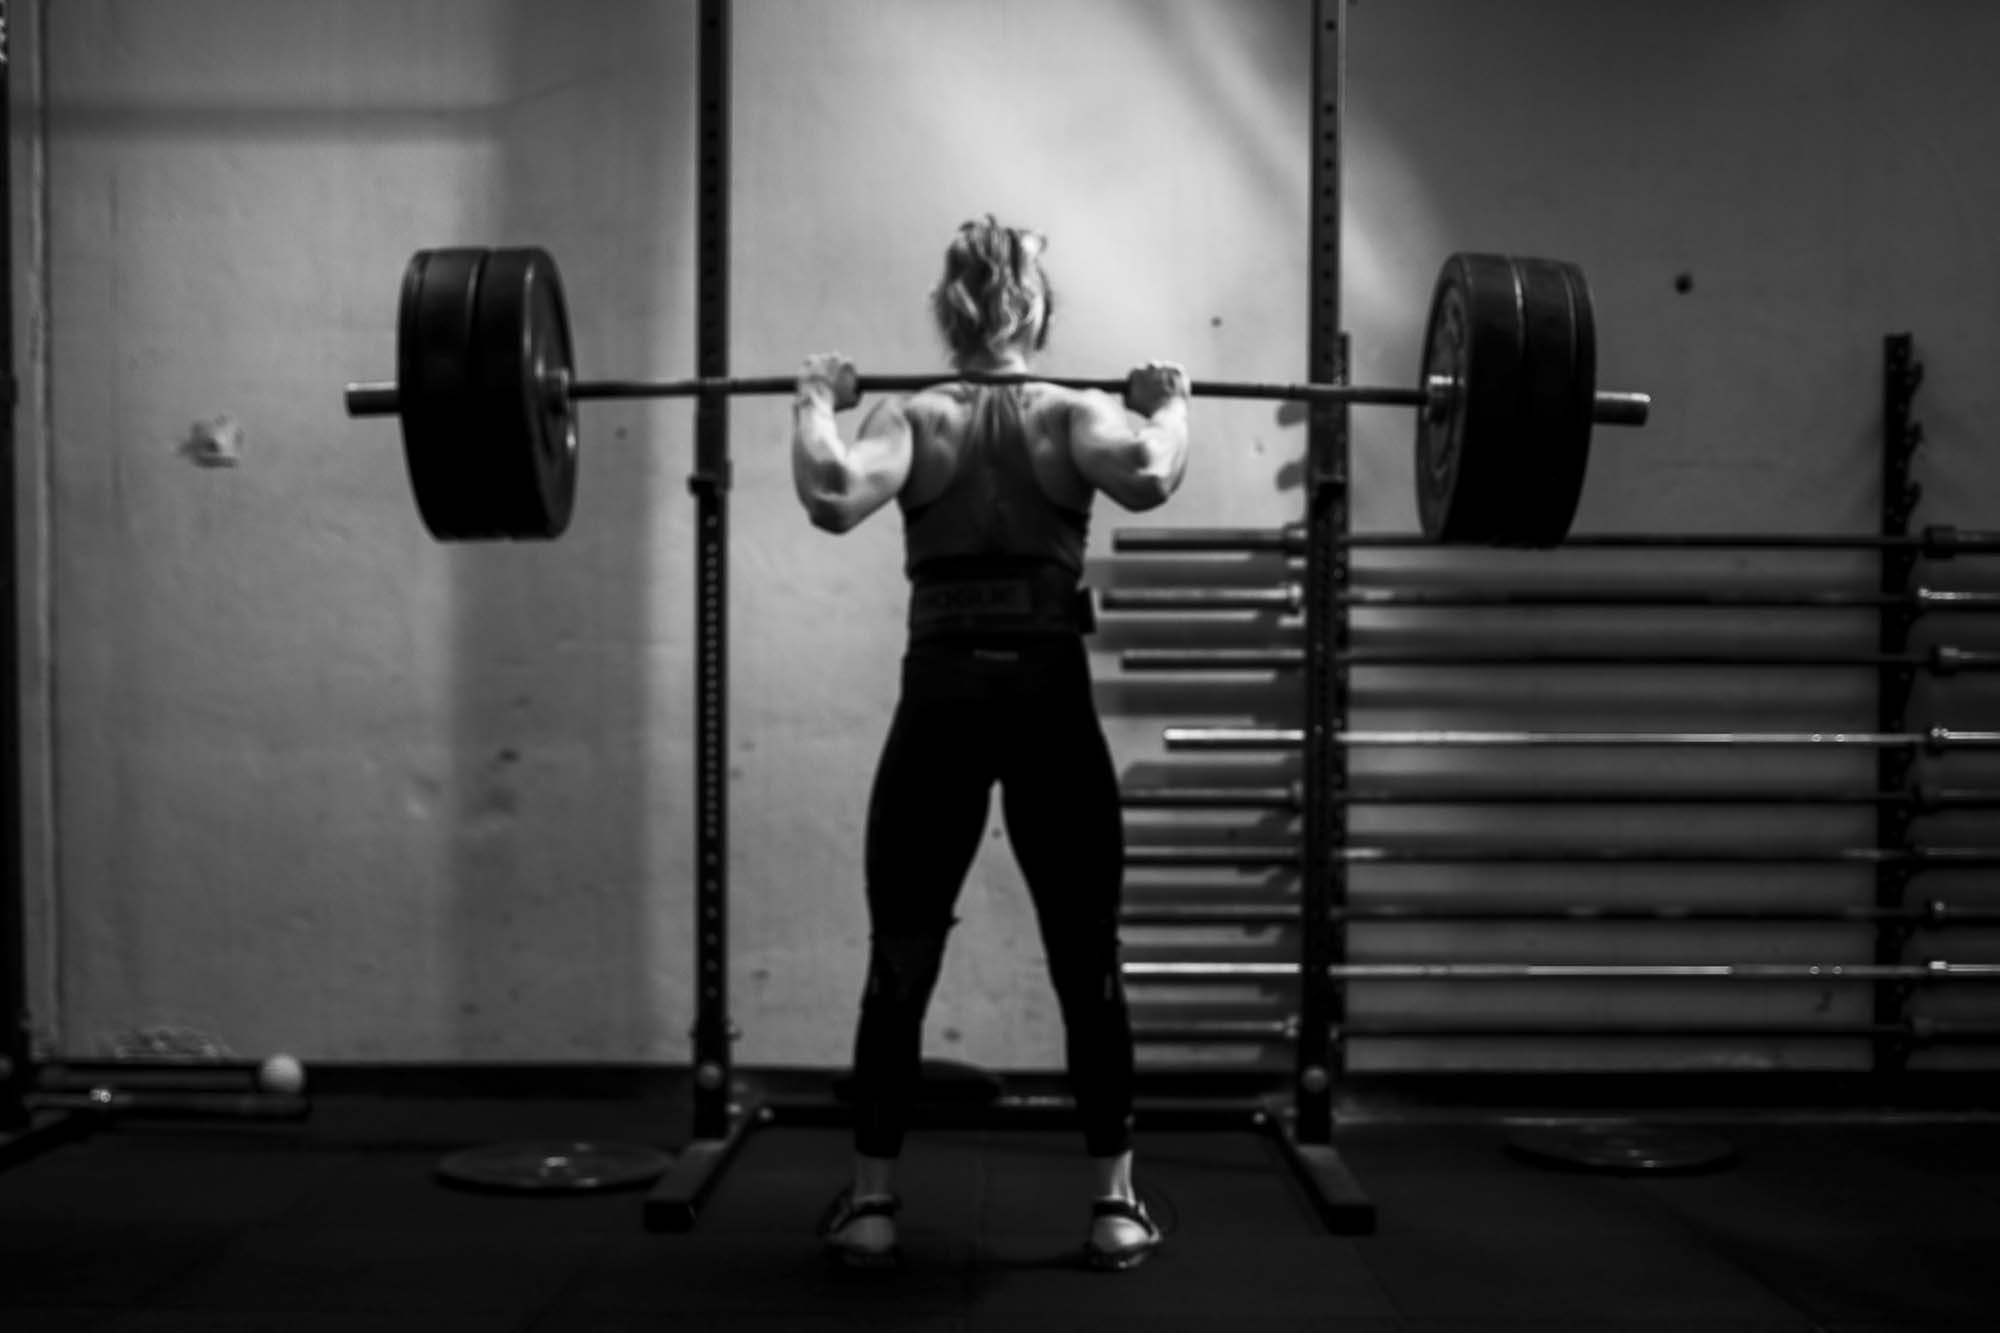 """""""There is simply no other exercise, and certainly no machine, that produces the level of central nervous system activity, improved balance and coordination, skeletal loading and bone density enhancement, muscular stimulation and growth, connective tissue stress and strength, psychological demand and toughness, and overall systemic conditioning than the correctly performed full squat."""""""